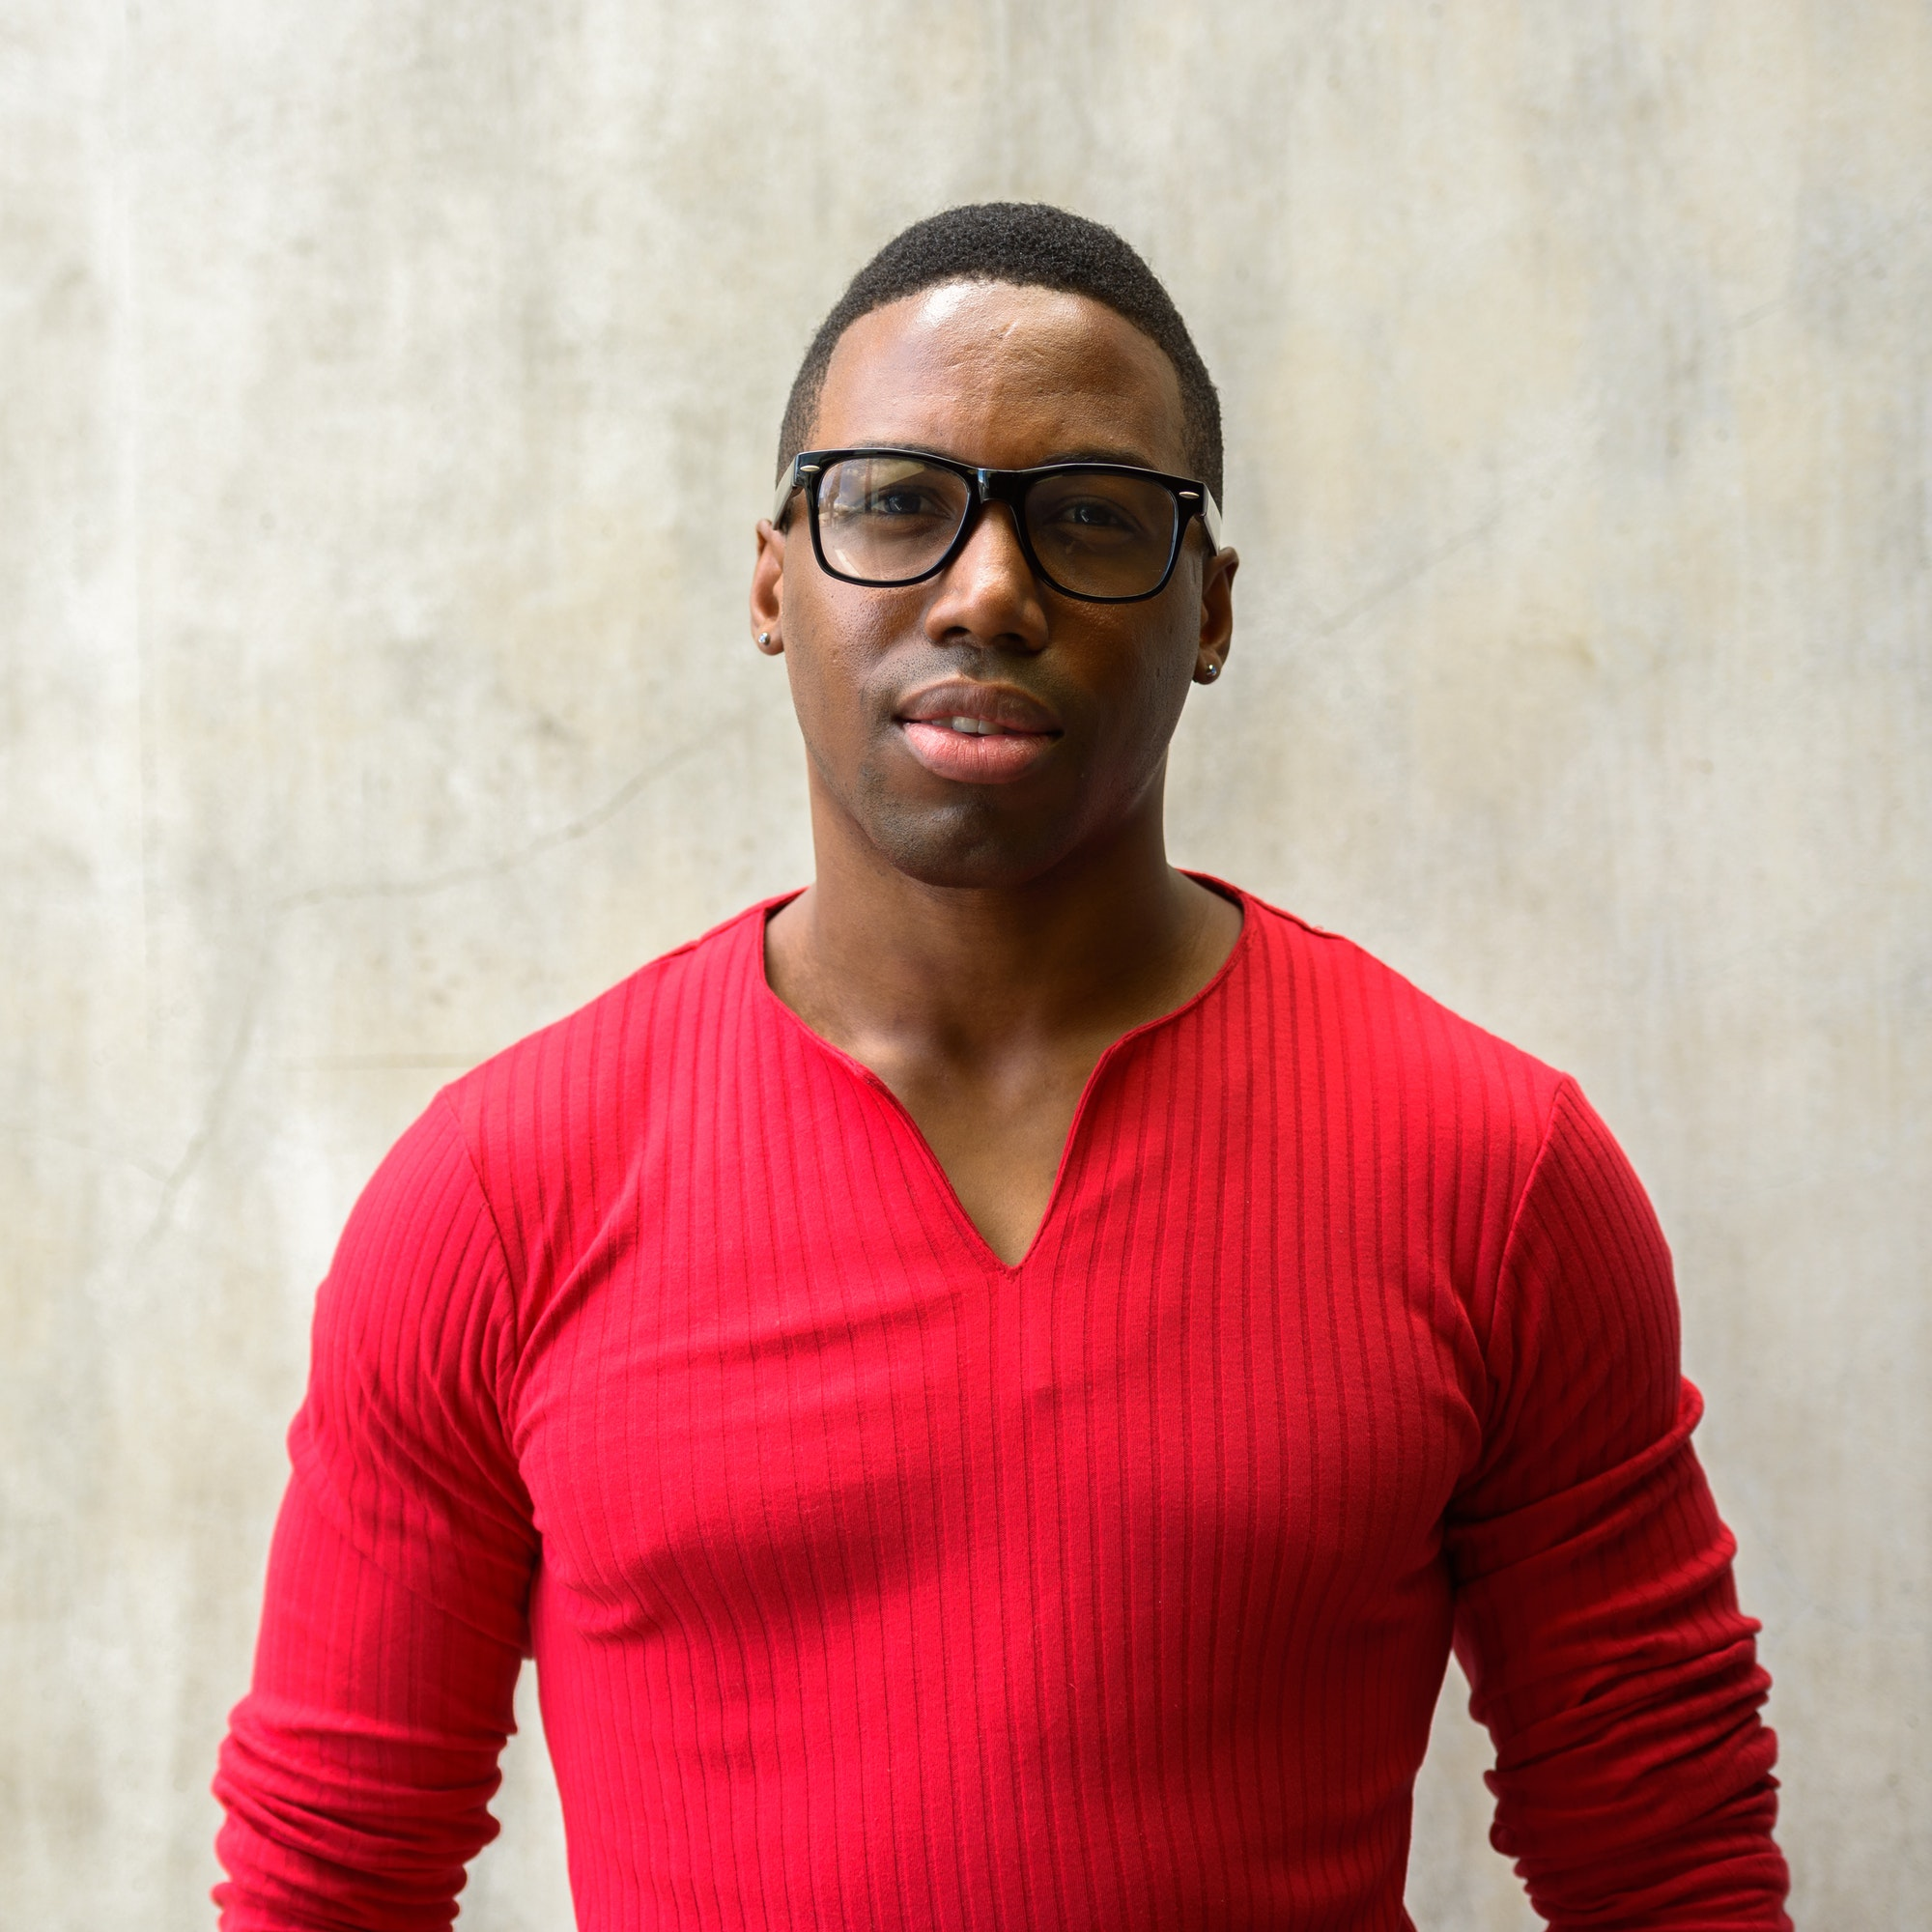 Portrait of young handsome African man with eyeglasses